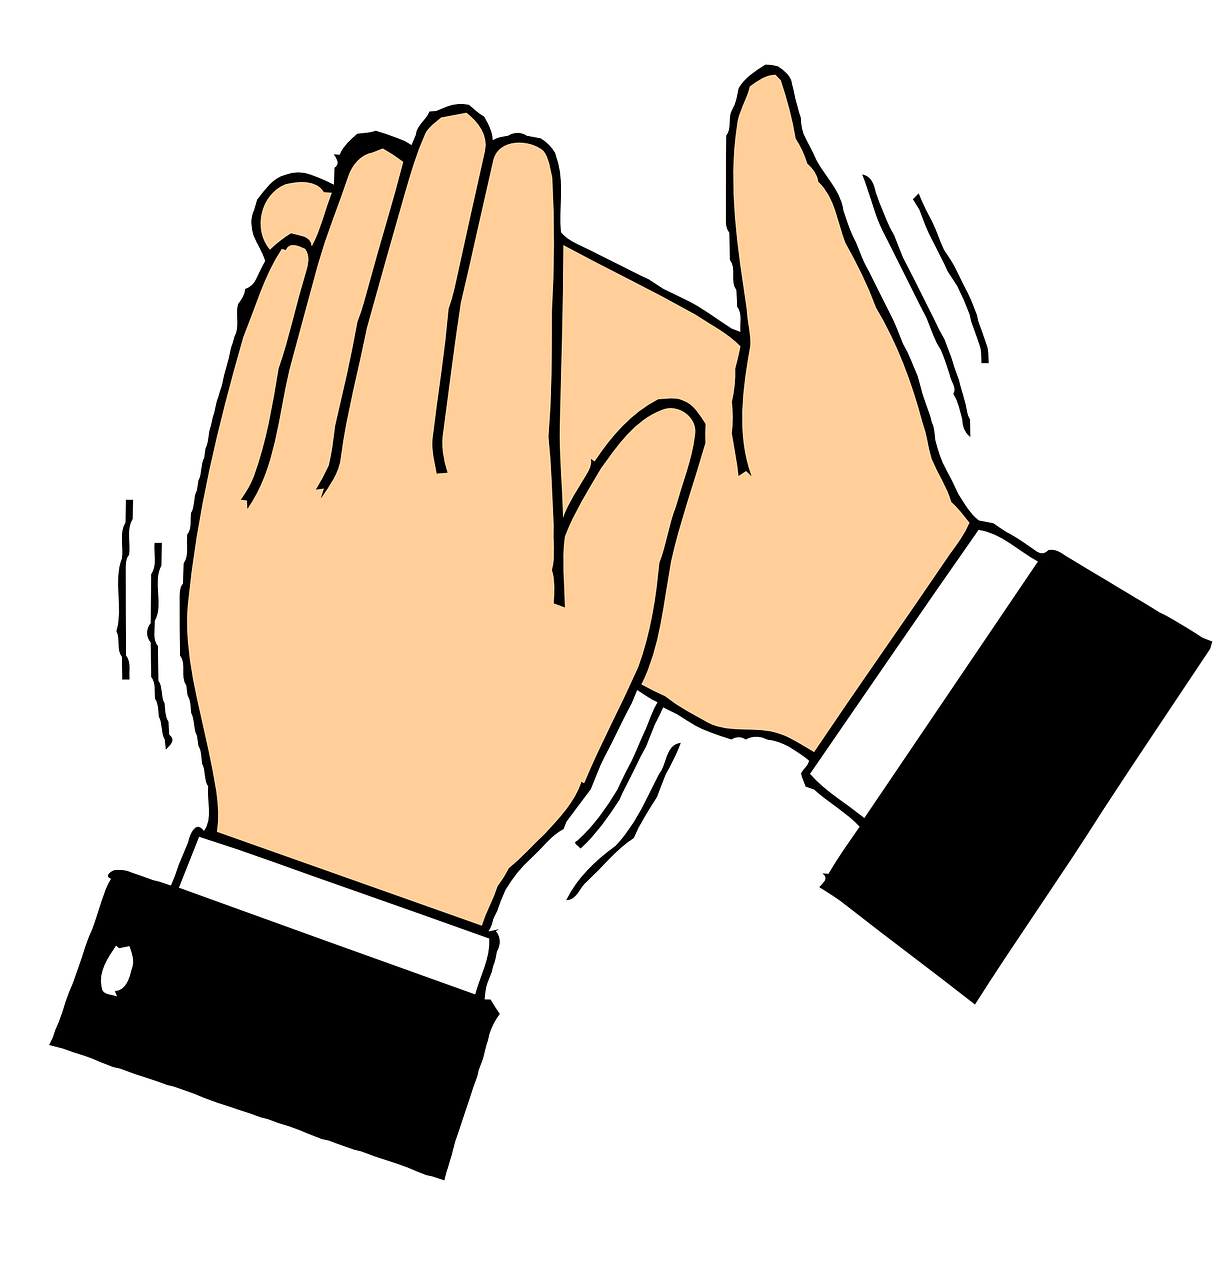 Applause clipart uses hand. The medium claps tool